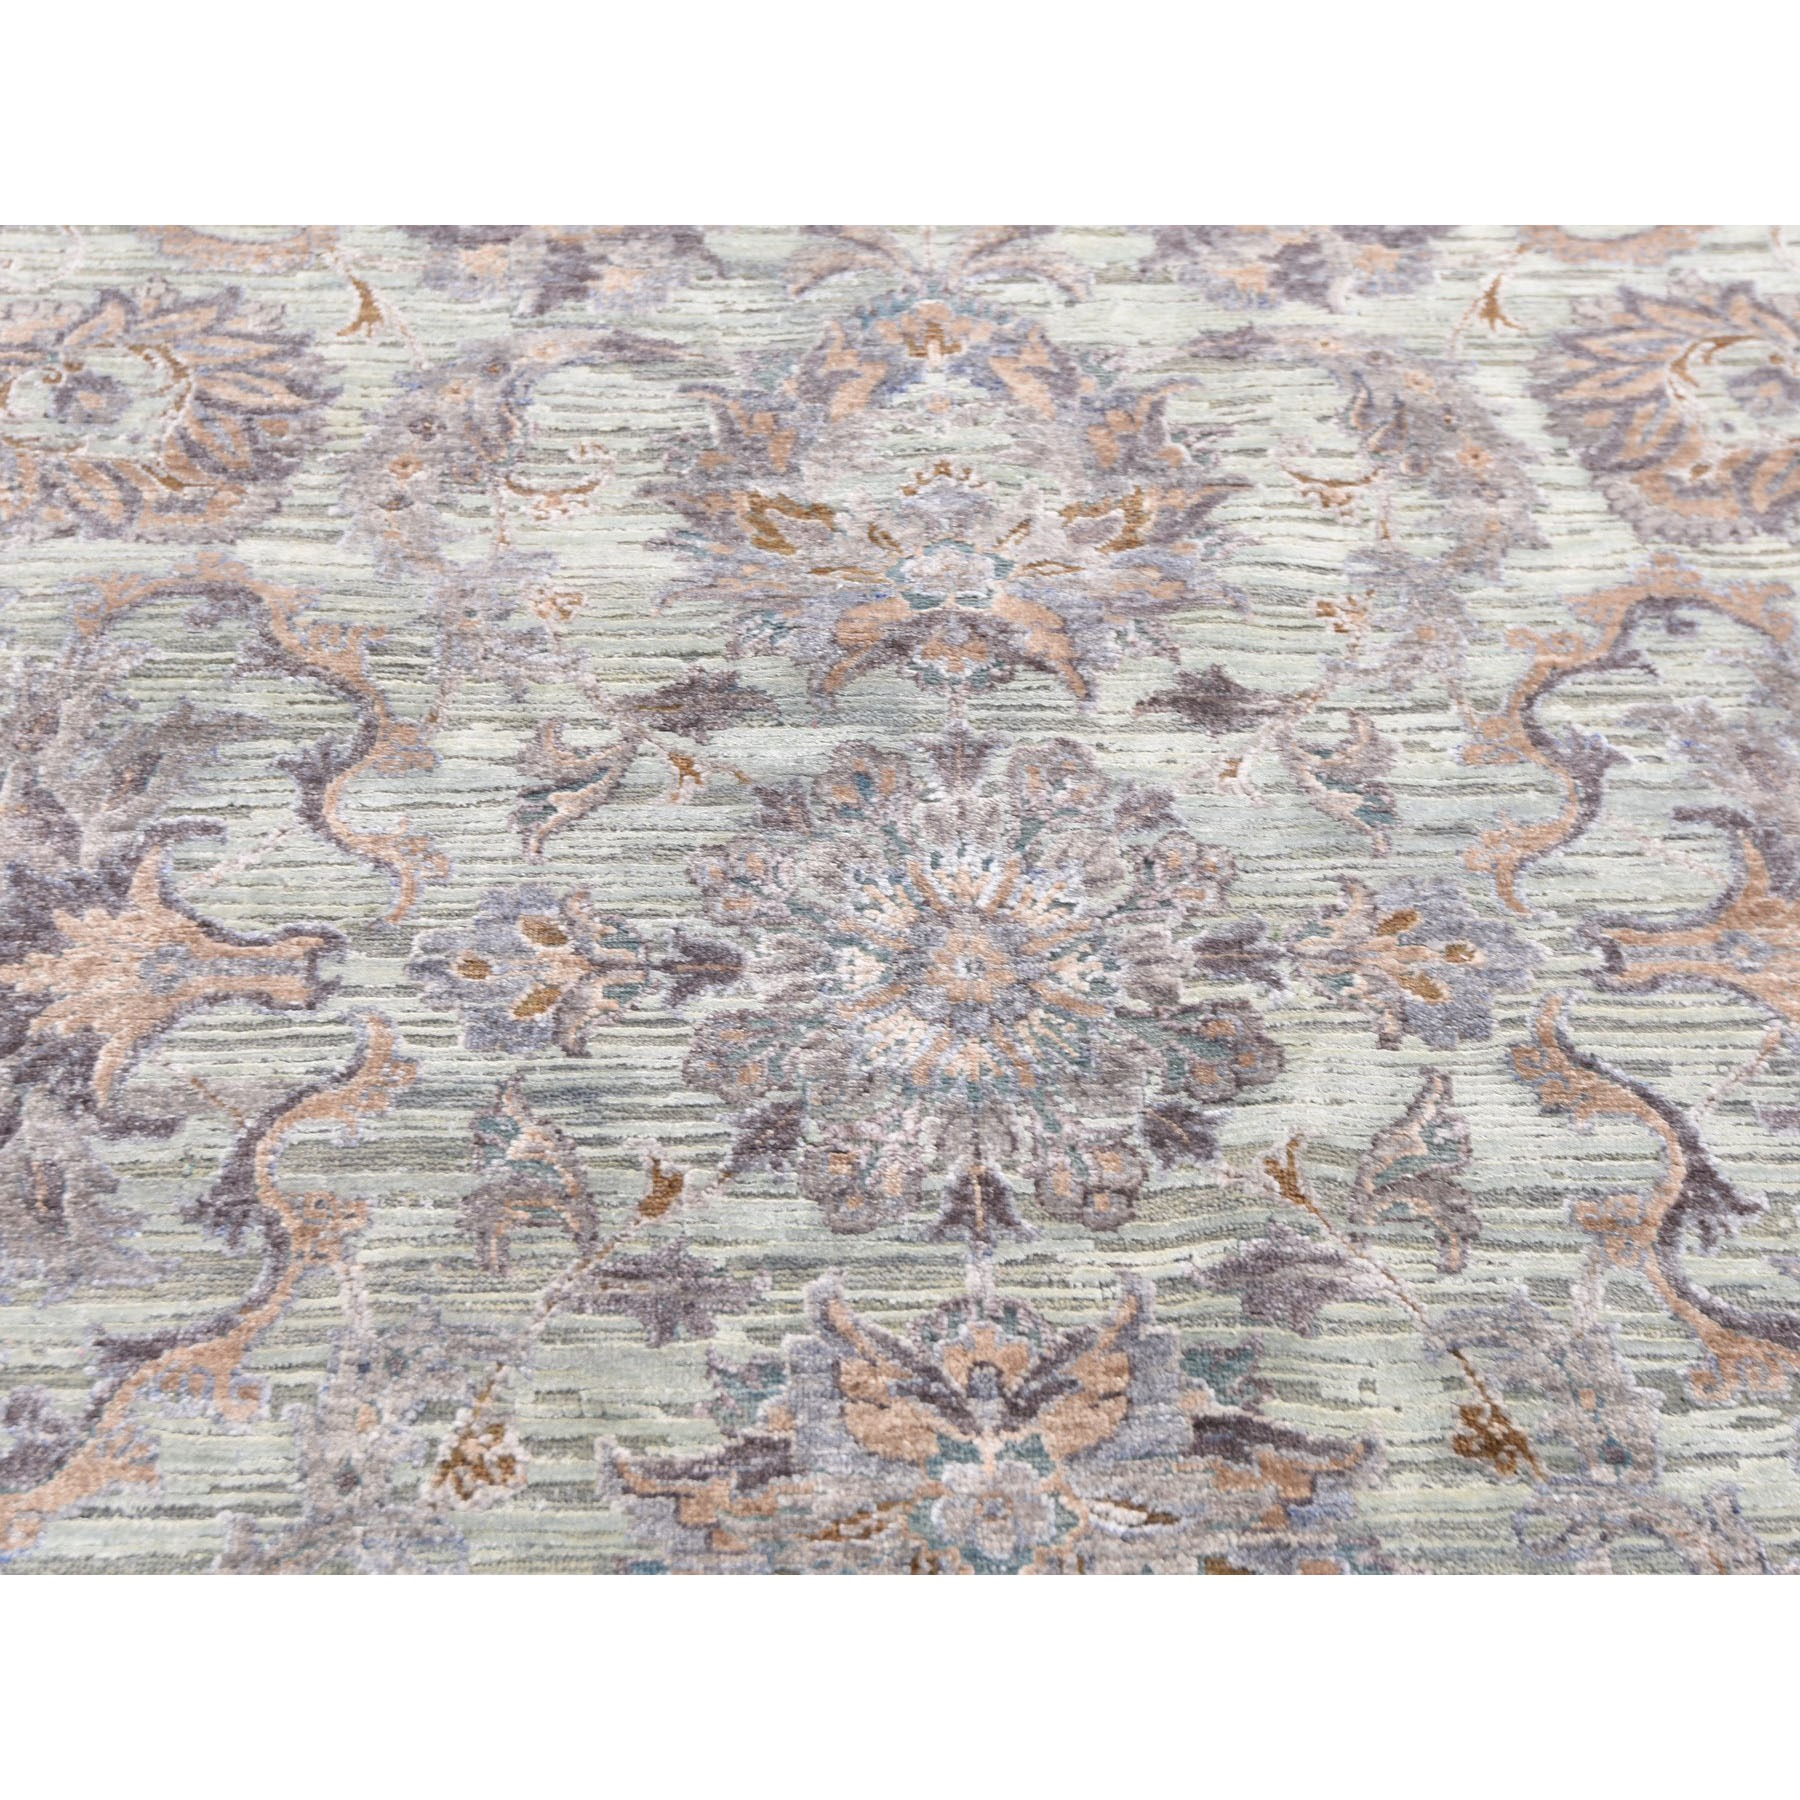 11-8 x15-3  Oversized Light Green Pure Silk With Textured Wool Mughal Design Hand Knotted Oriental Rug